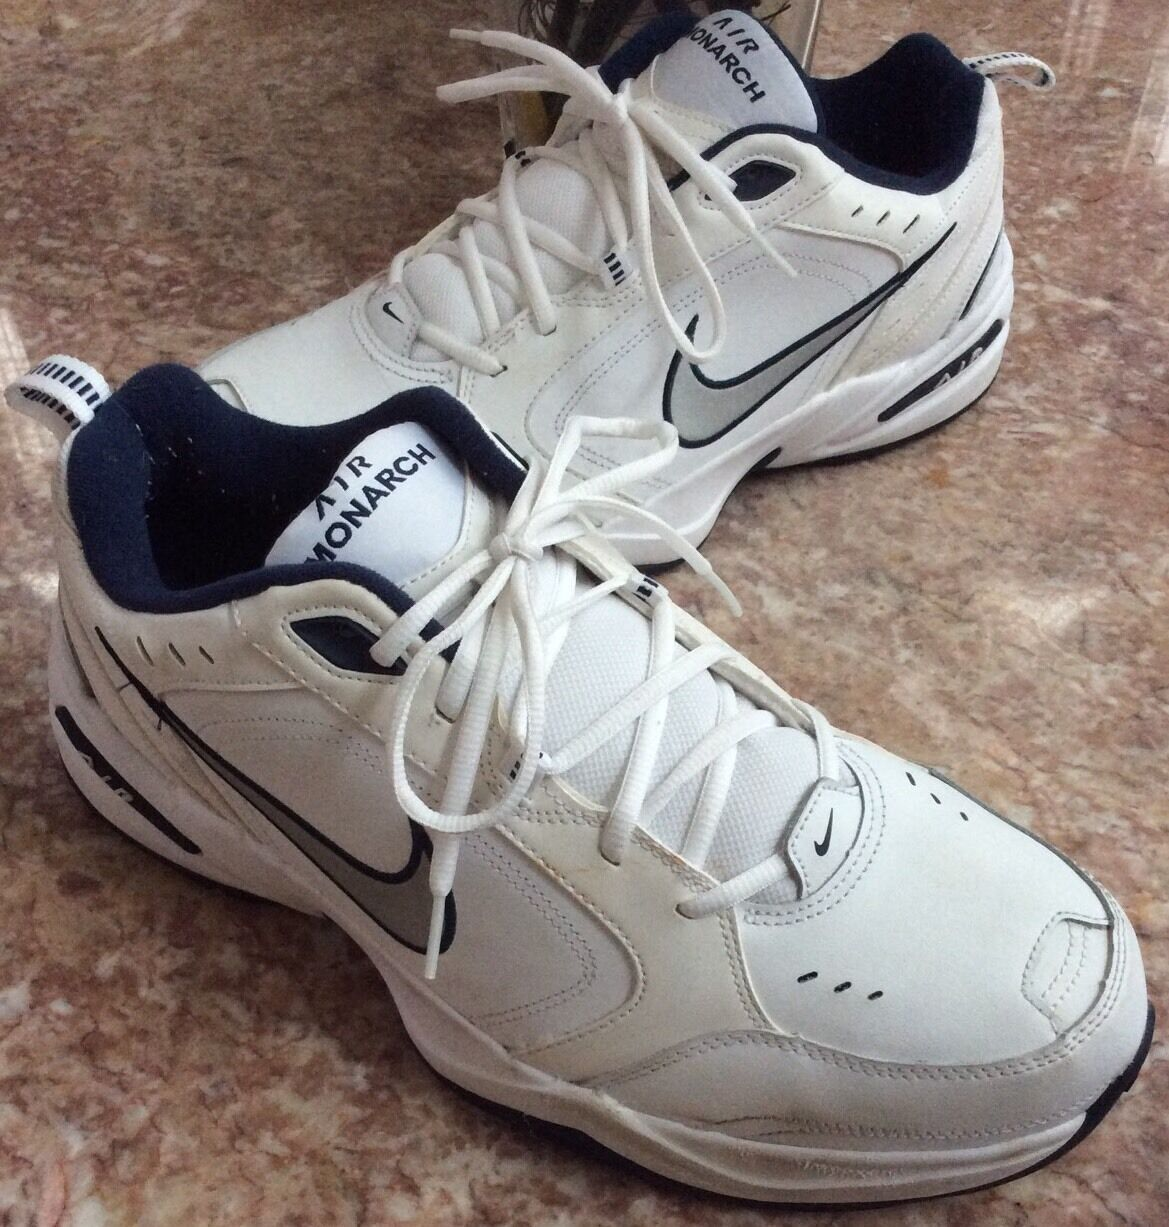 Nike Air Monarch IV Men's White/Navy Cross-Trainers Shoes Comfortable The most popular shoes for men and women